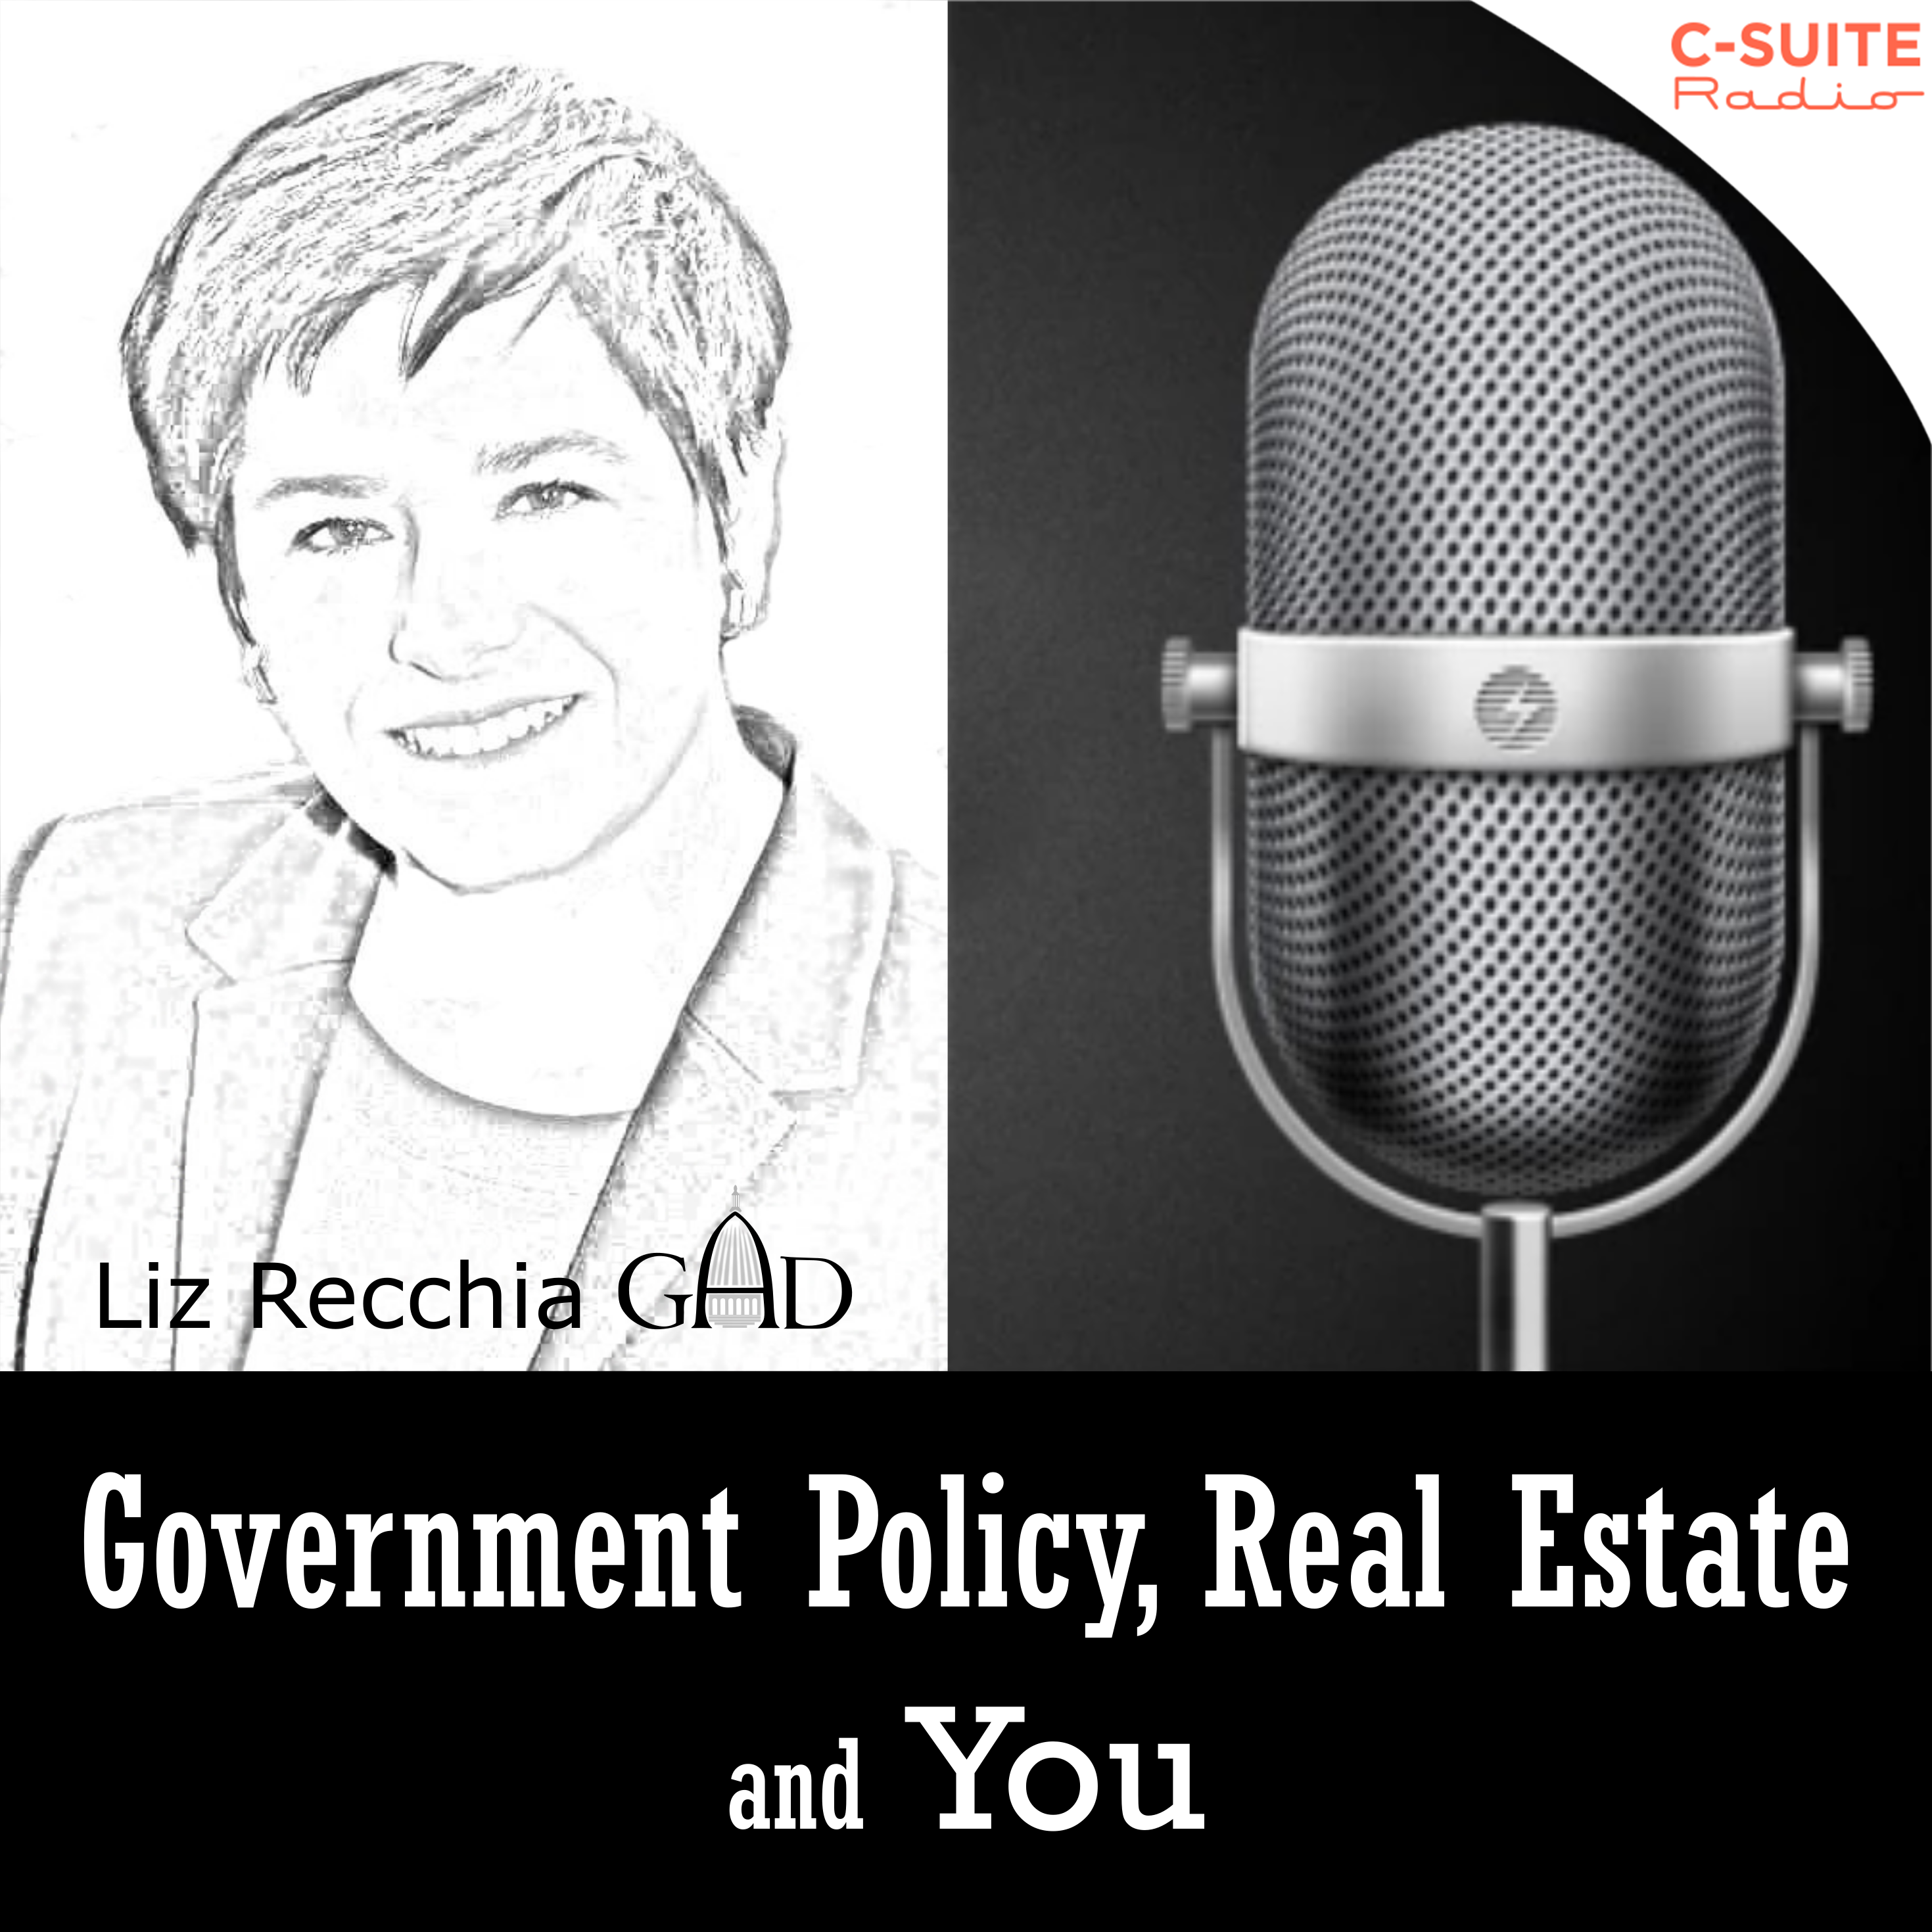 Government Policy, Real Estate and You!